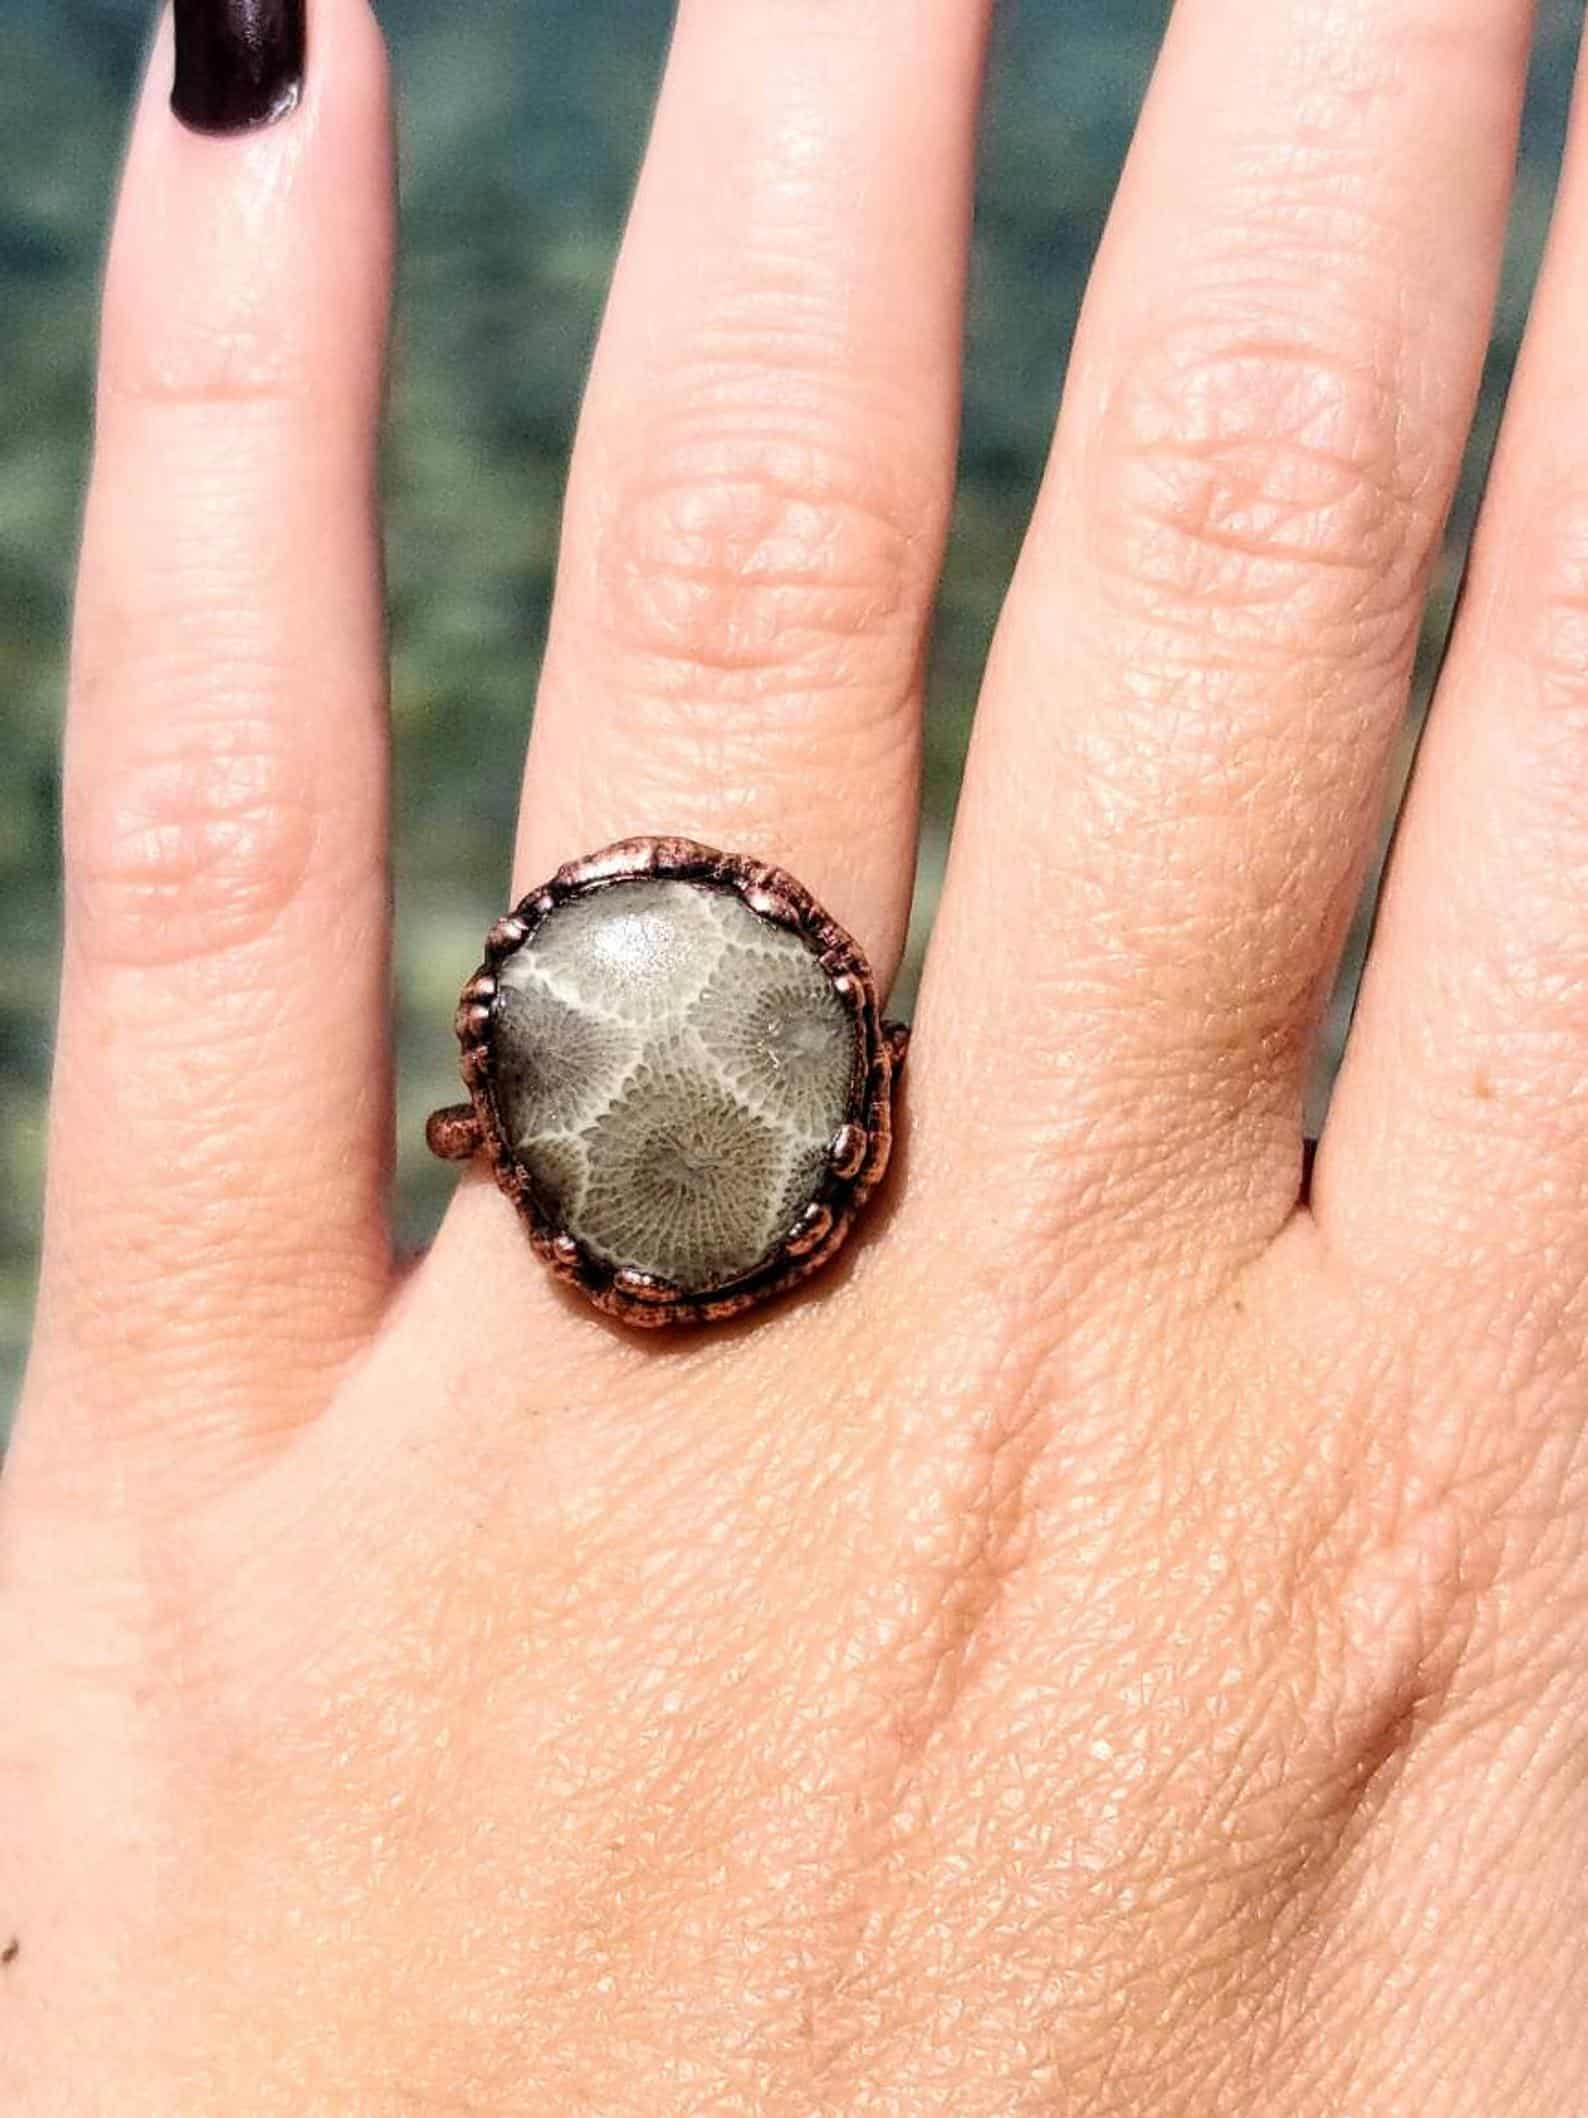 Petoskey Stone Ring - an ultimate michigan gift idea